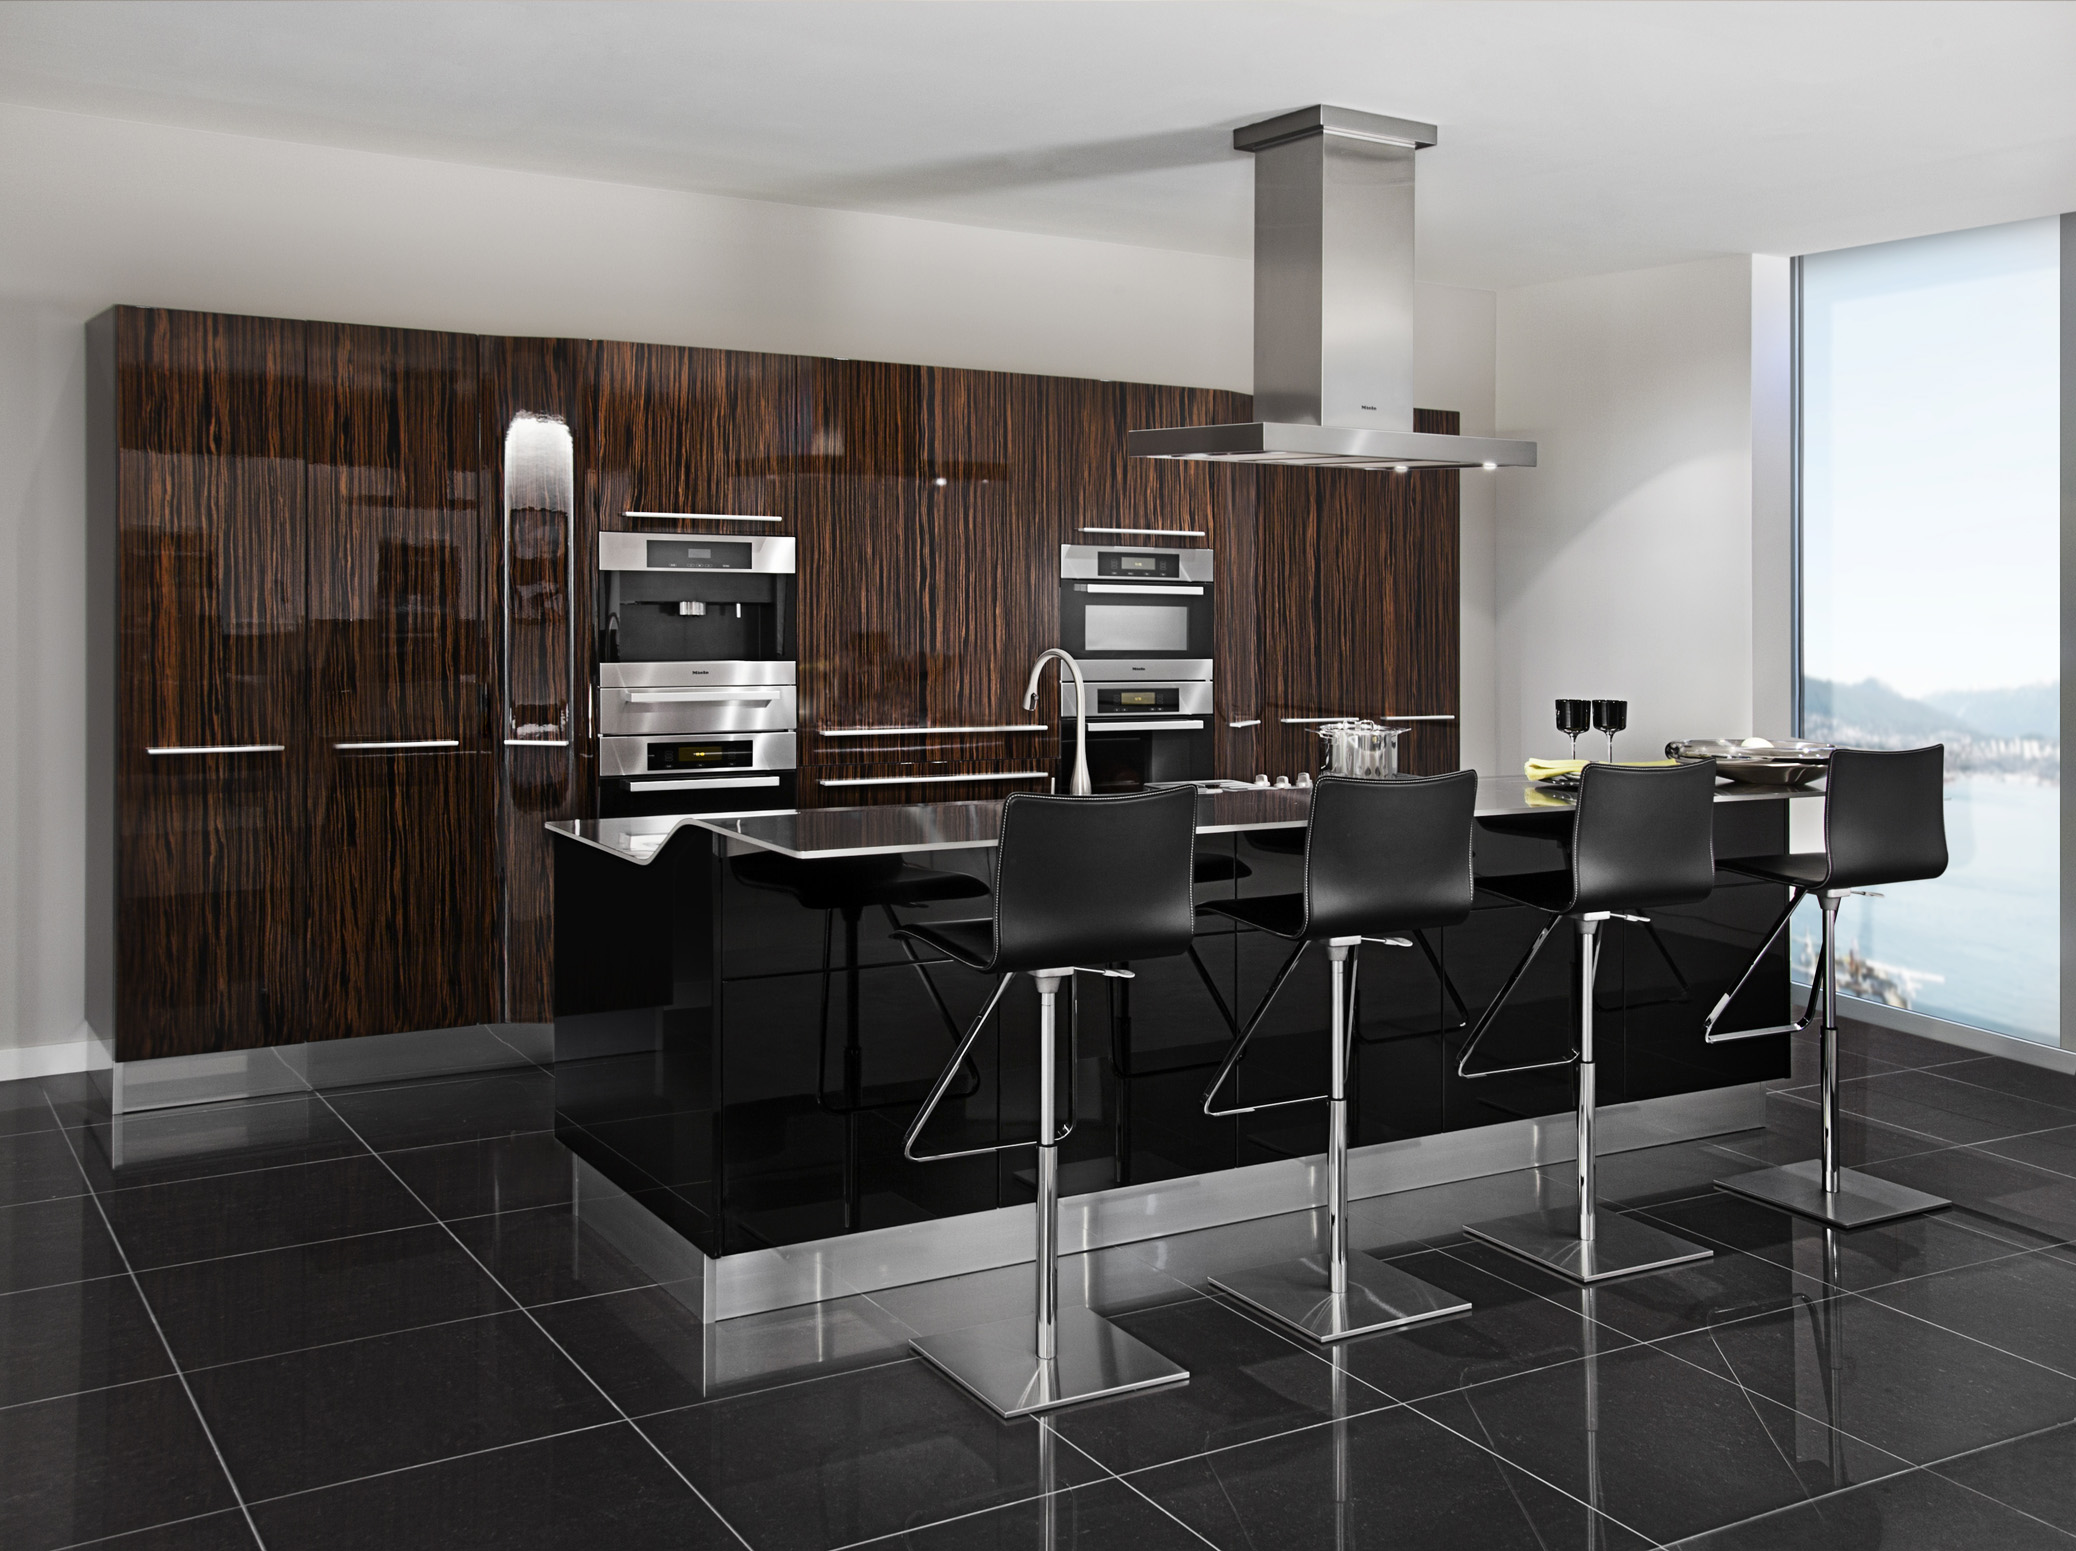 3D RENDERING of Modern Kitchen with Kitchen Island with Bar Stools